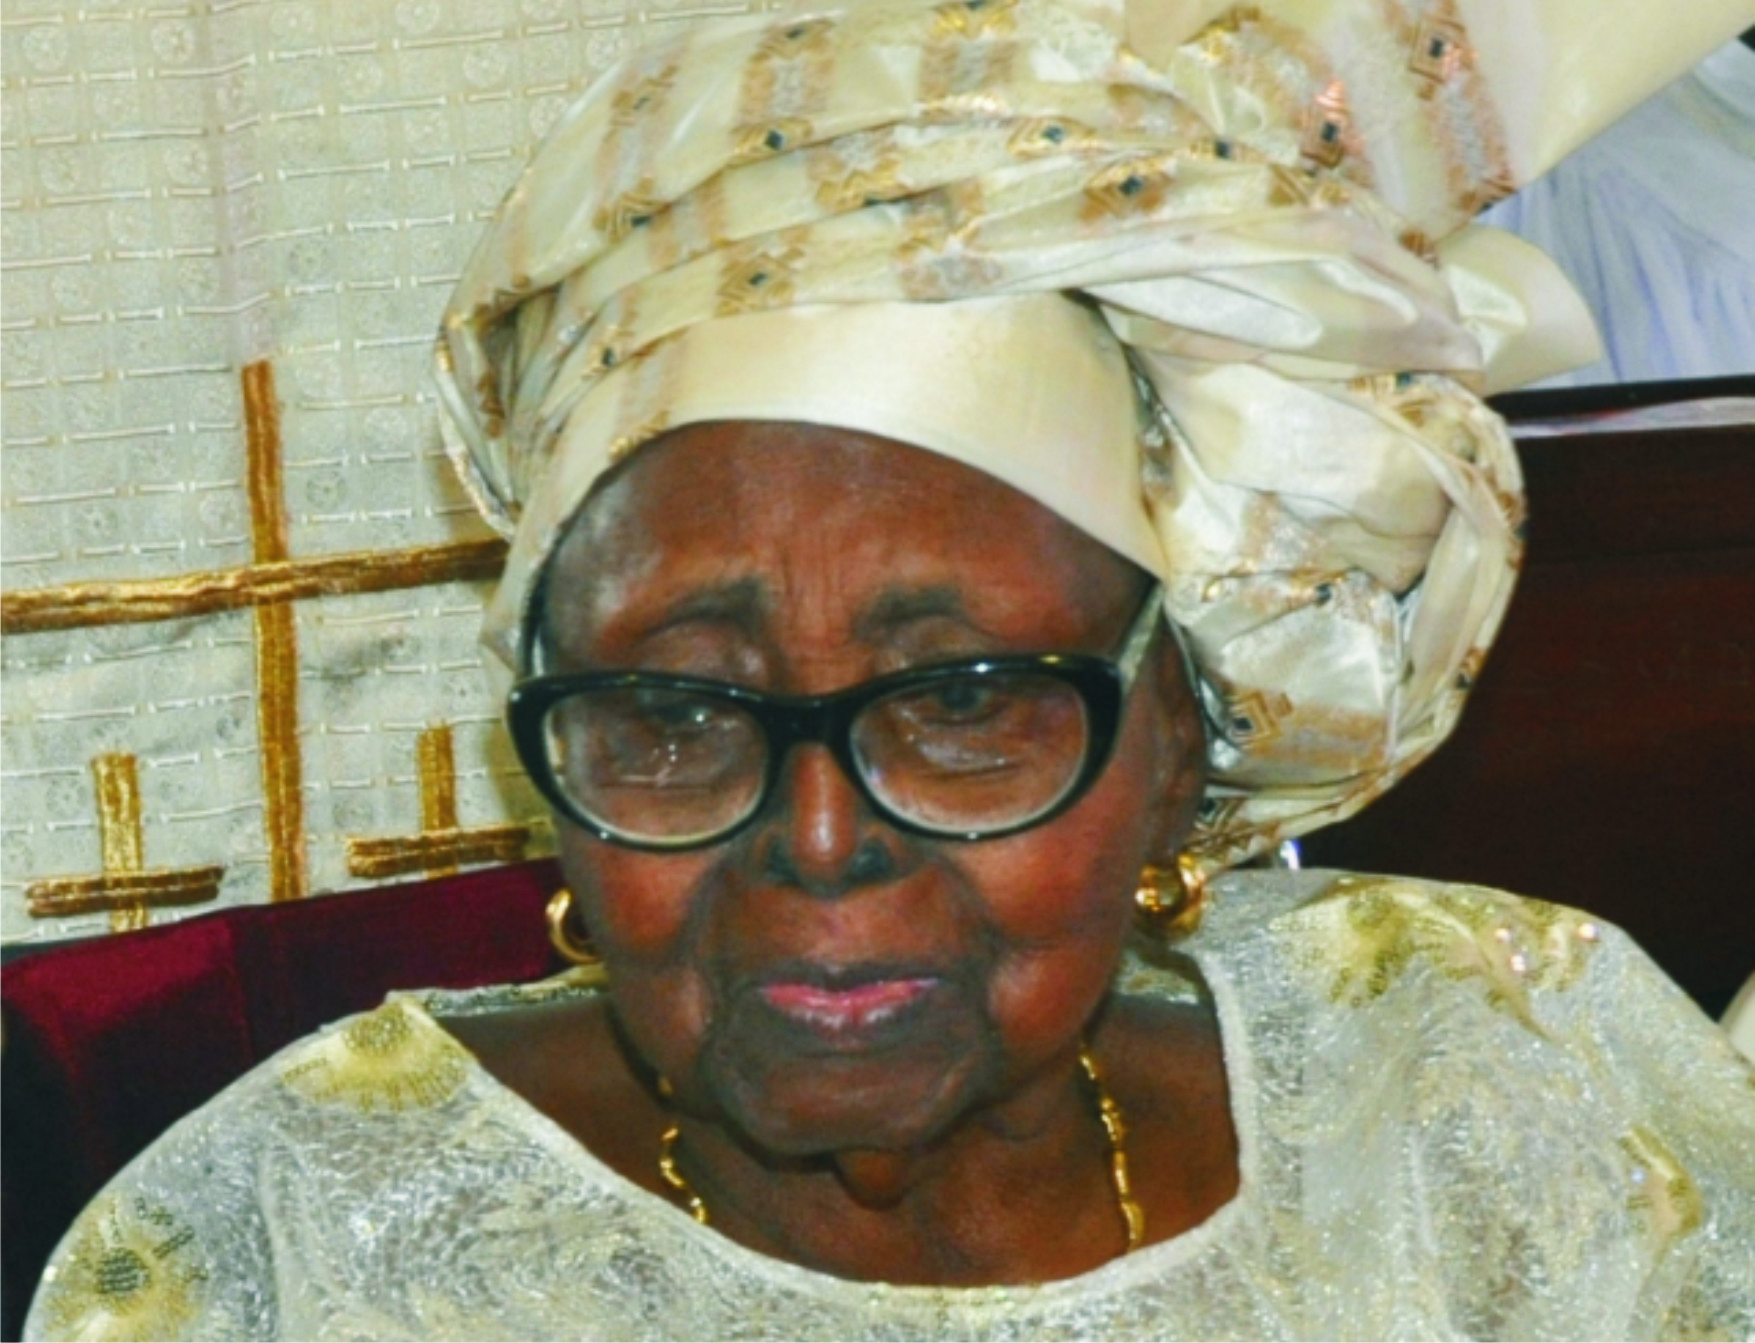 African Legends: Remembering H.I.D Awolowo